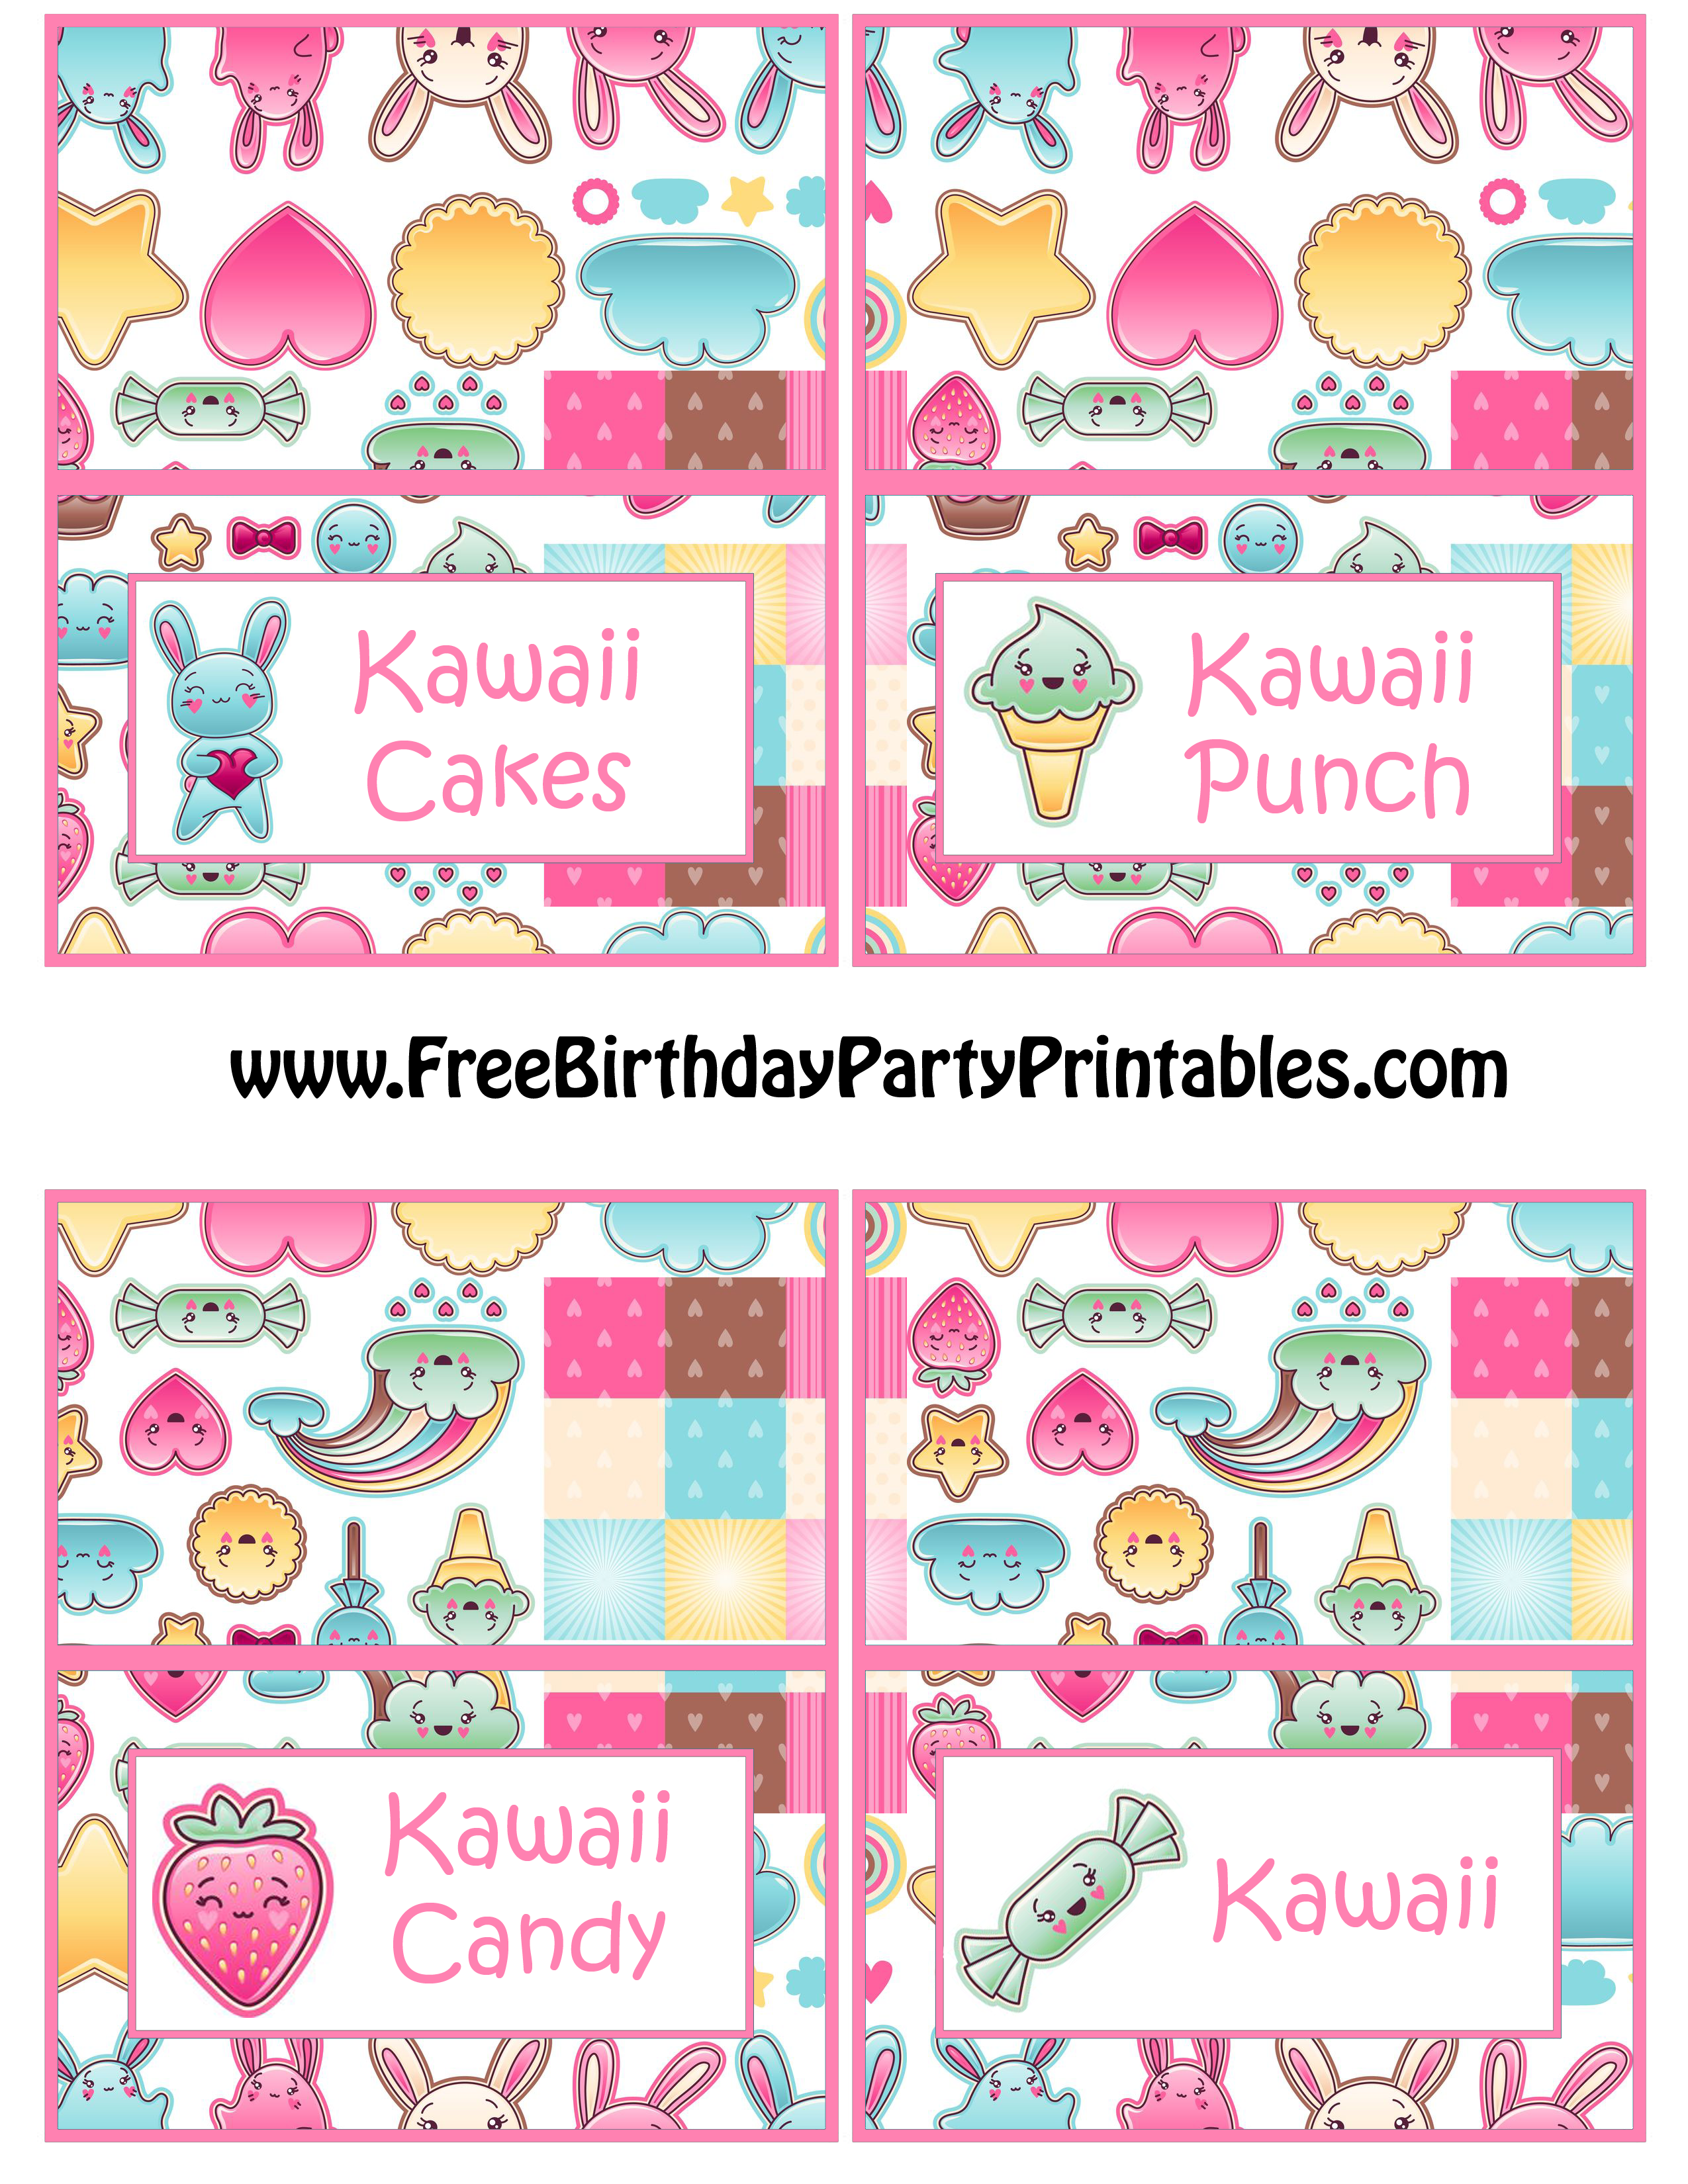 Kawaii Bunny Birthday Party Food Card Template By Free Birthday Party  Printables Kawaii Cakes Kawaii Punch  Free Birthday Cards Templates